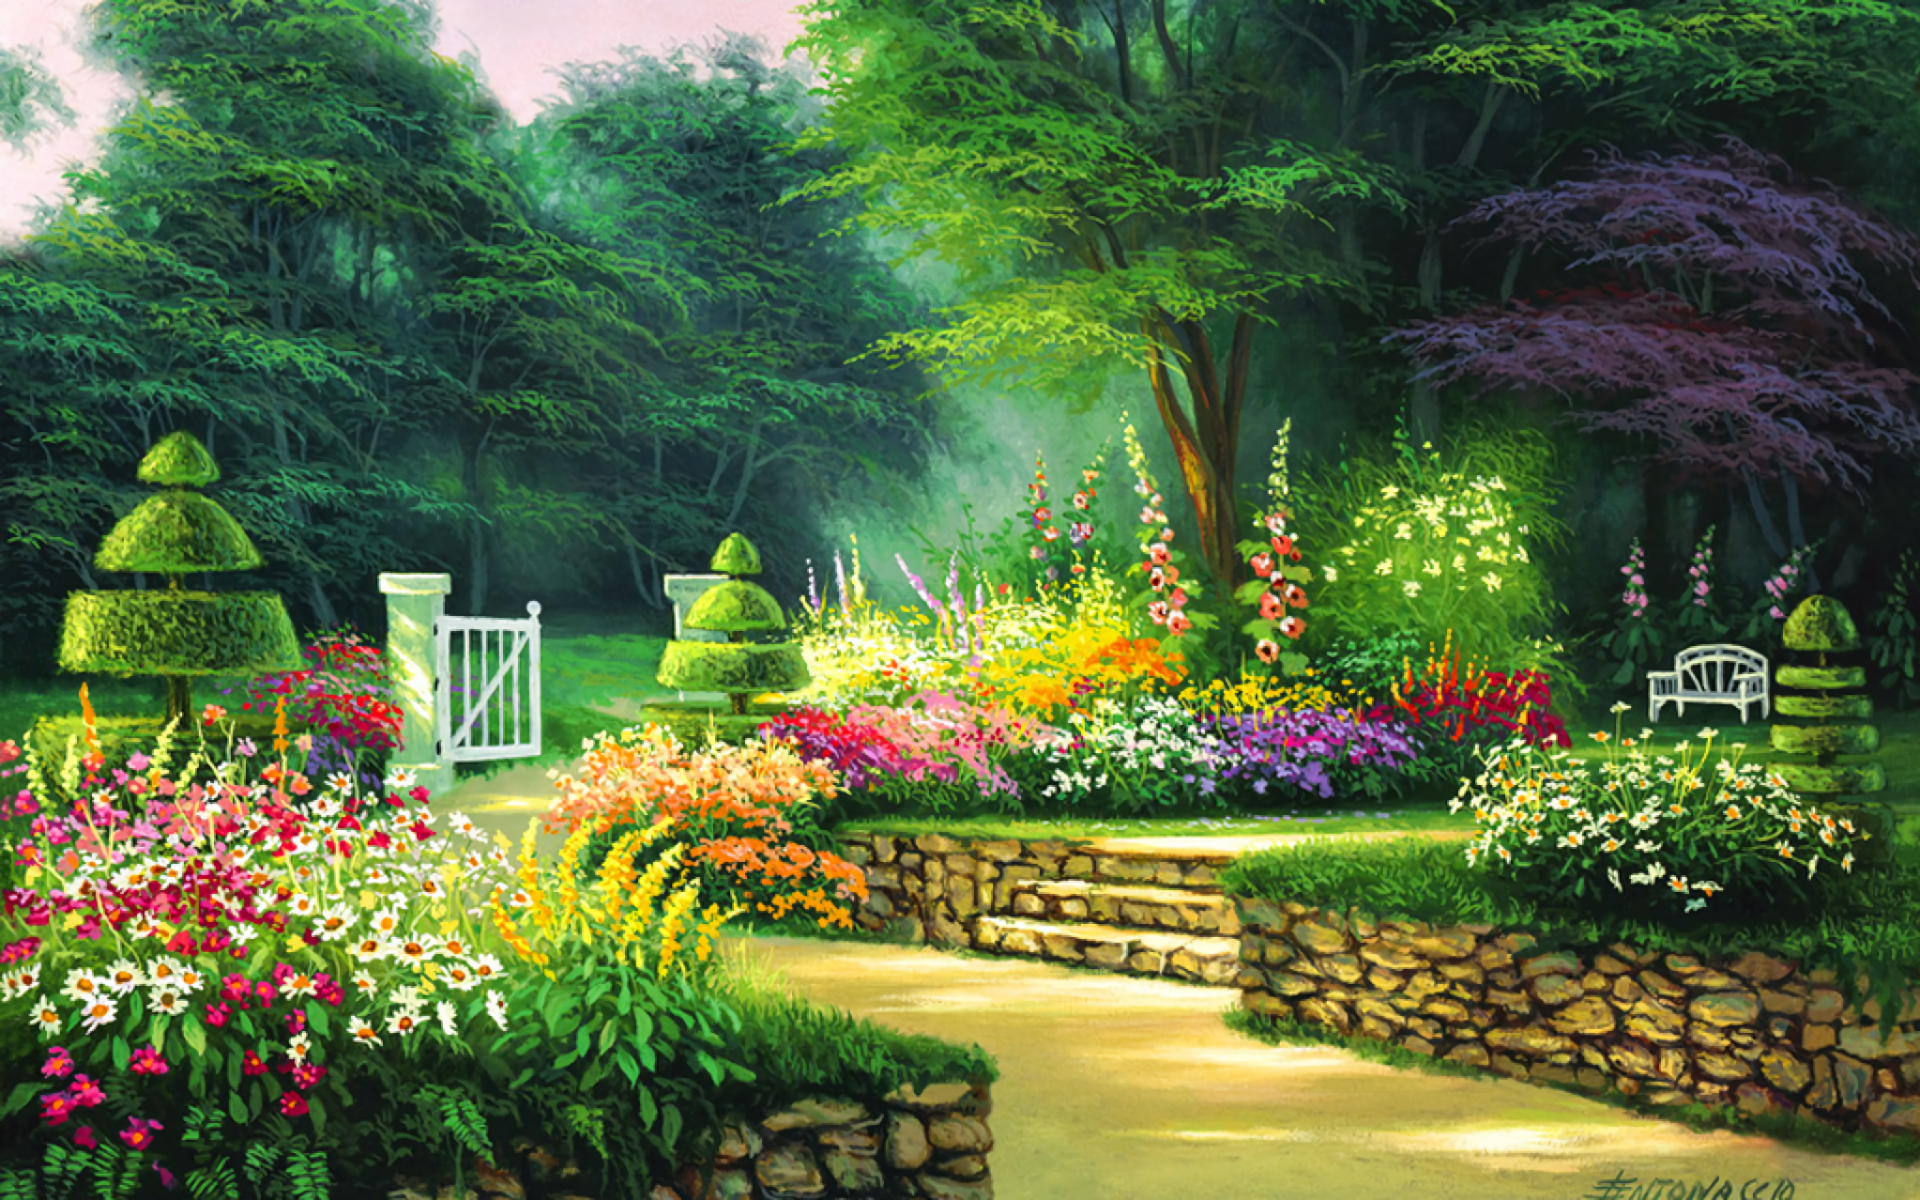 Cute Animated Wallpapers For Mobile Gif Spring Garden Hd Wallpaper Background Image 1920x1200